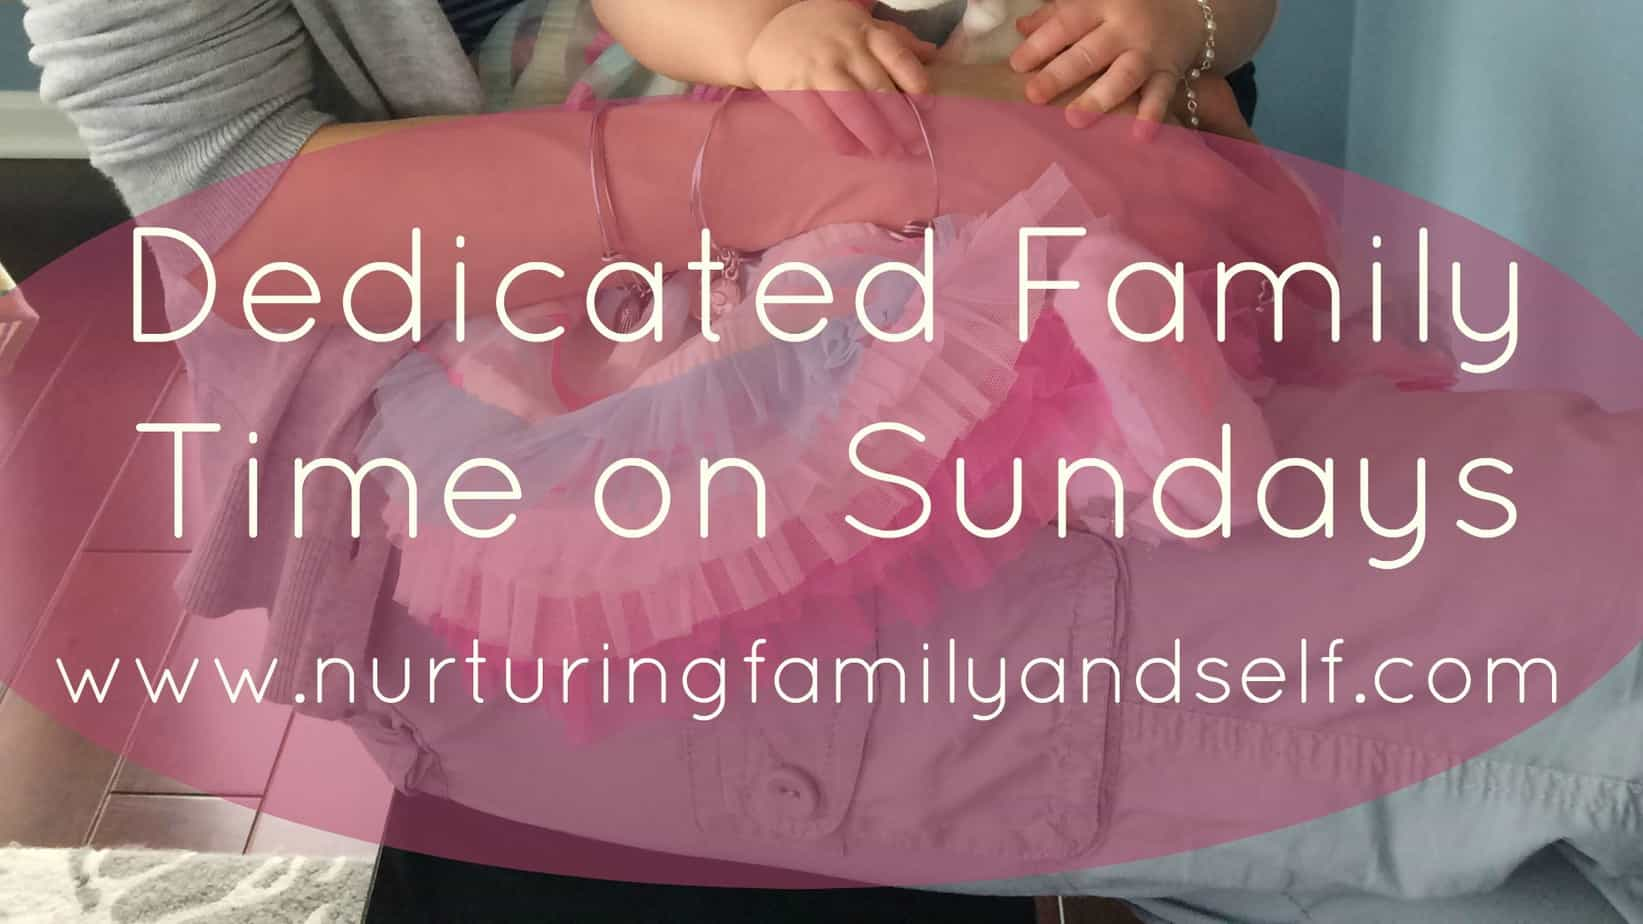 Dedicated Family Time on Sundays Featured Image